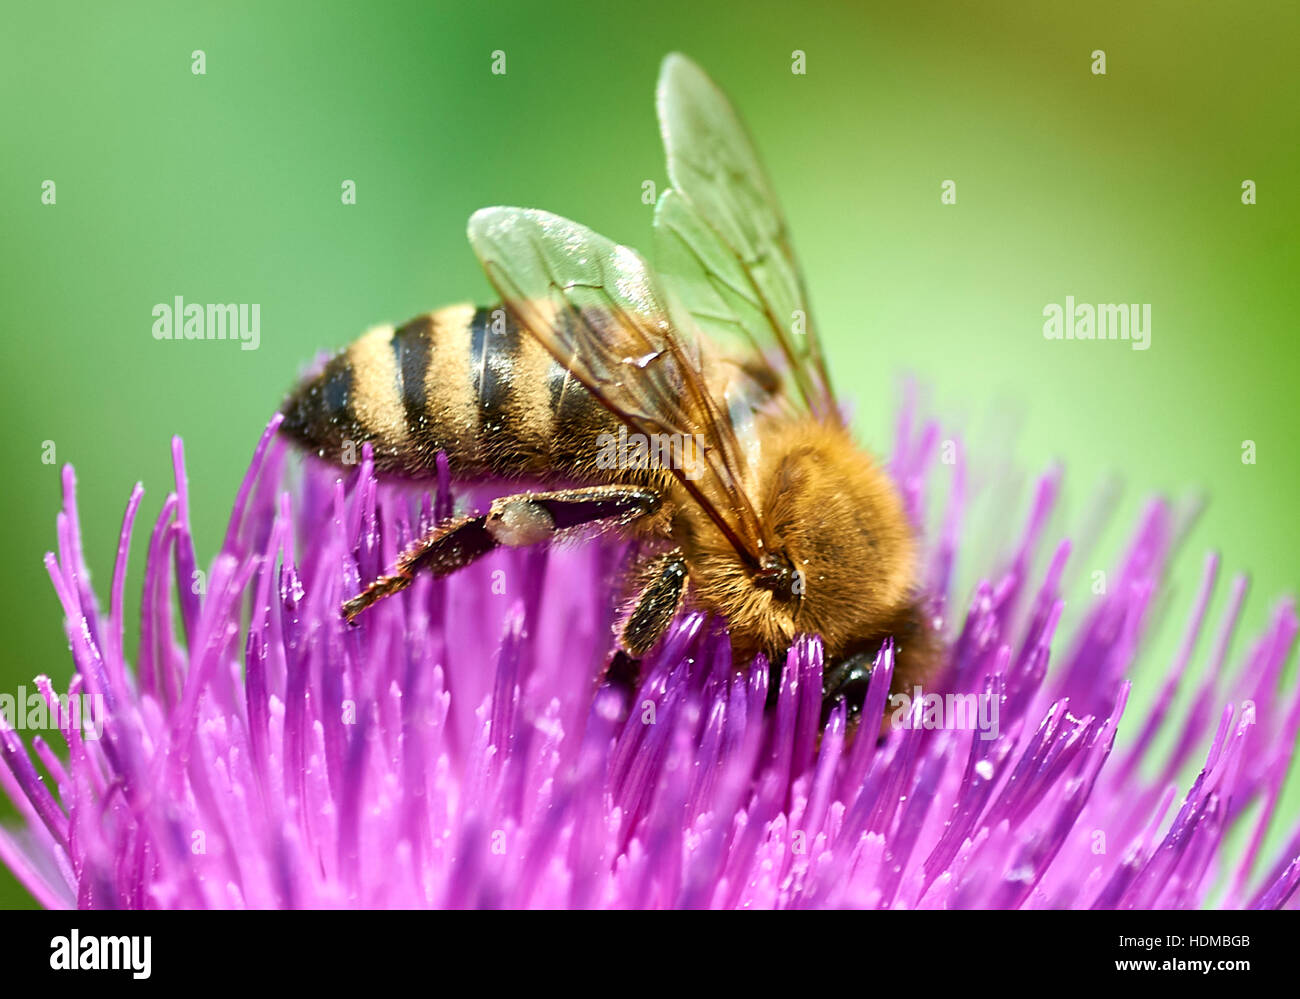 Bee collecting nectar from a Curly Plumeless Thistle - Stock Image